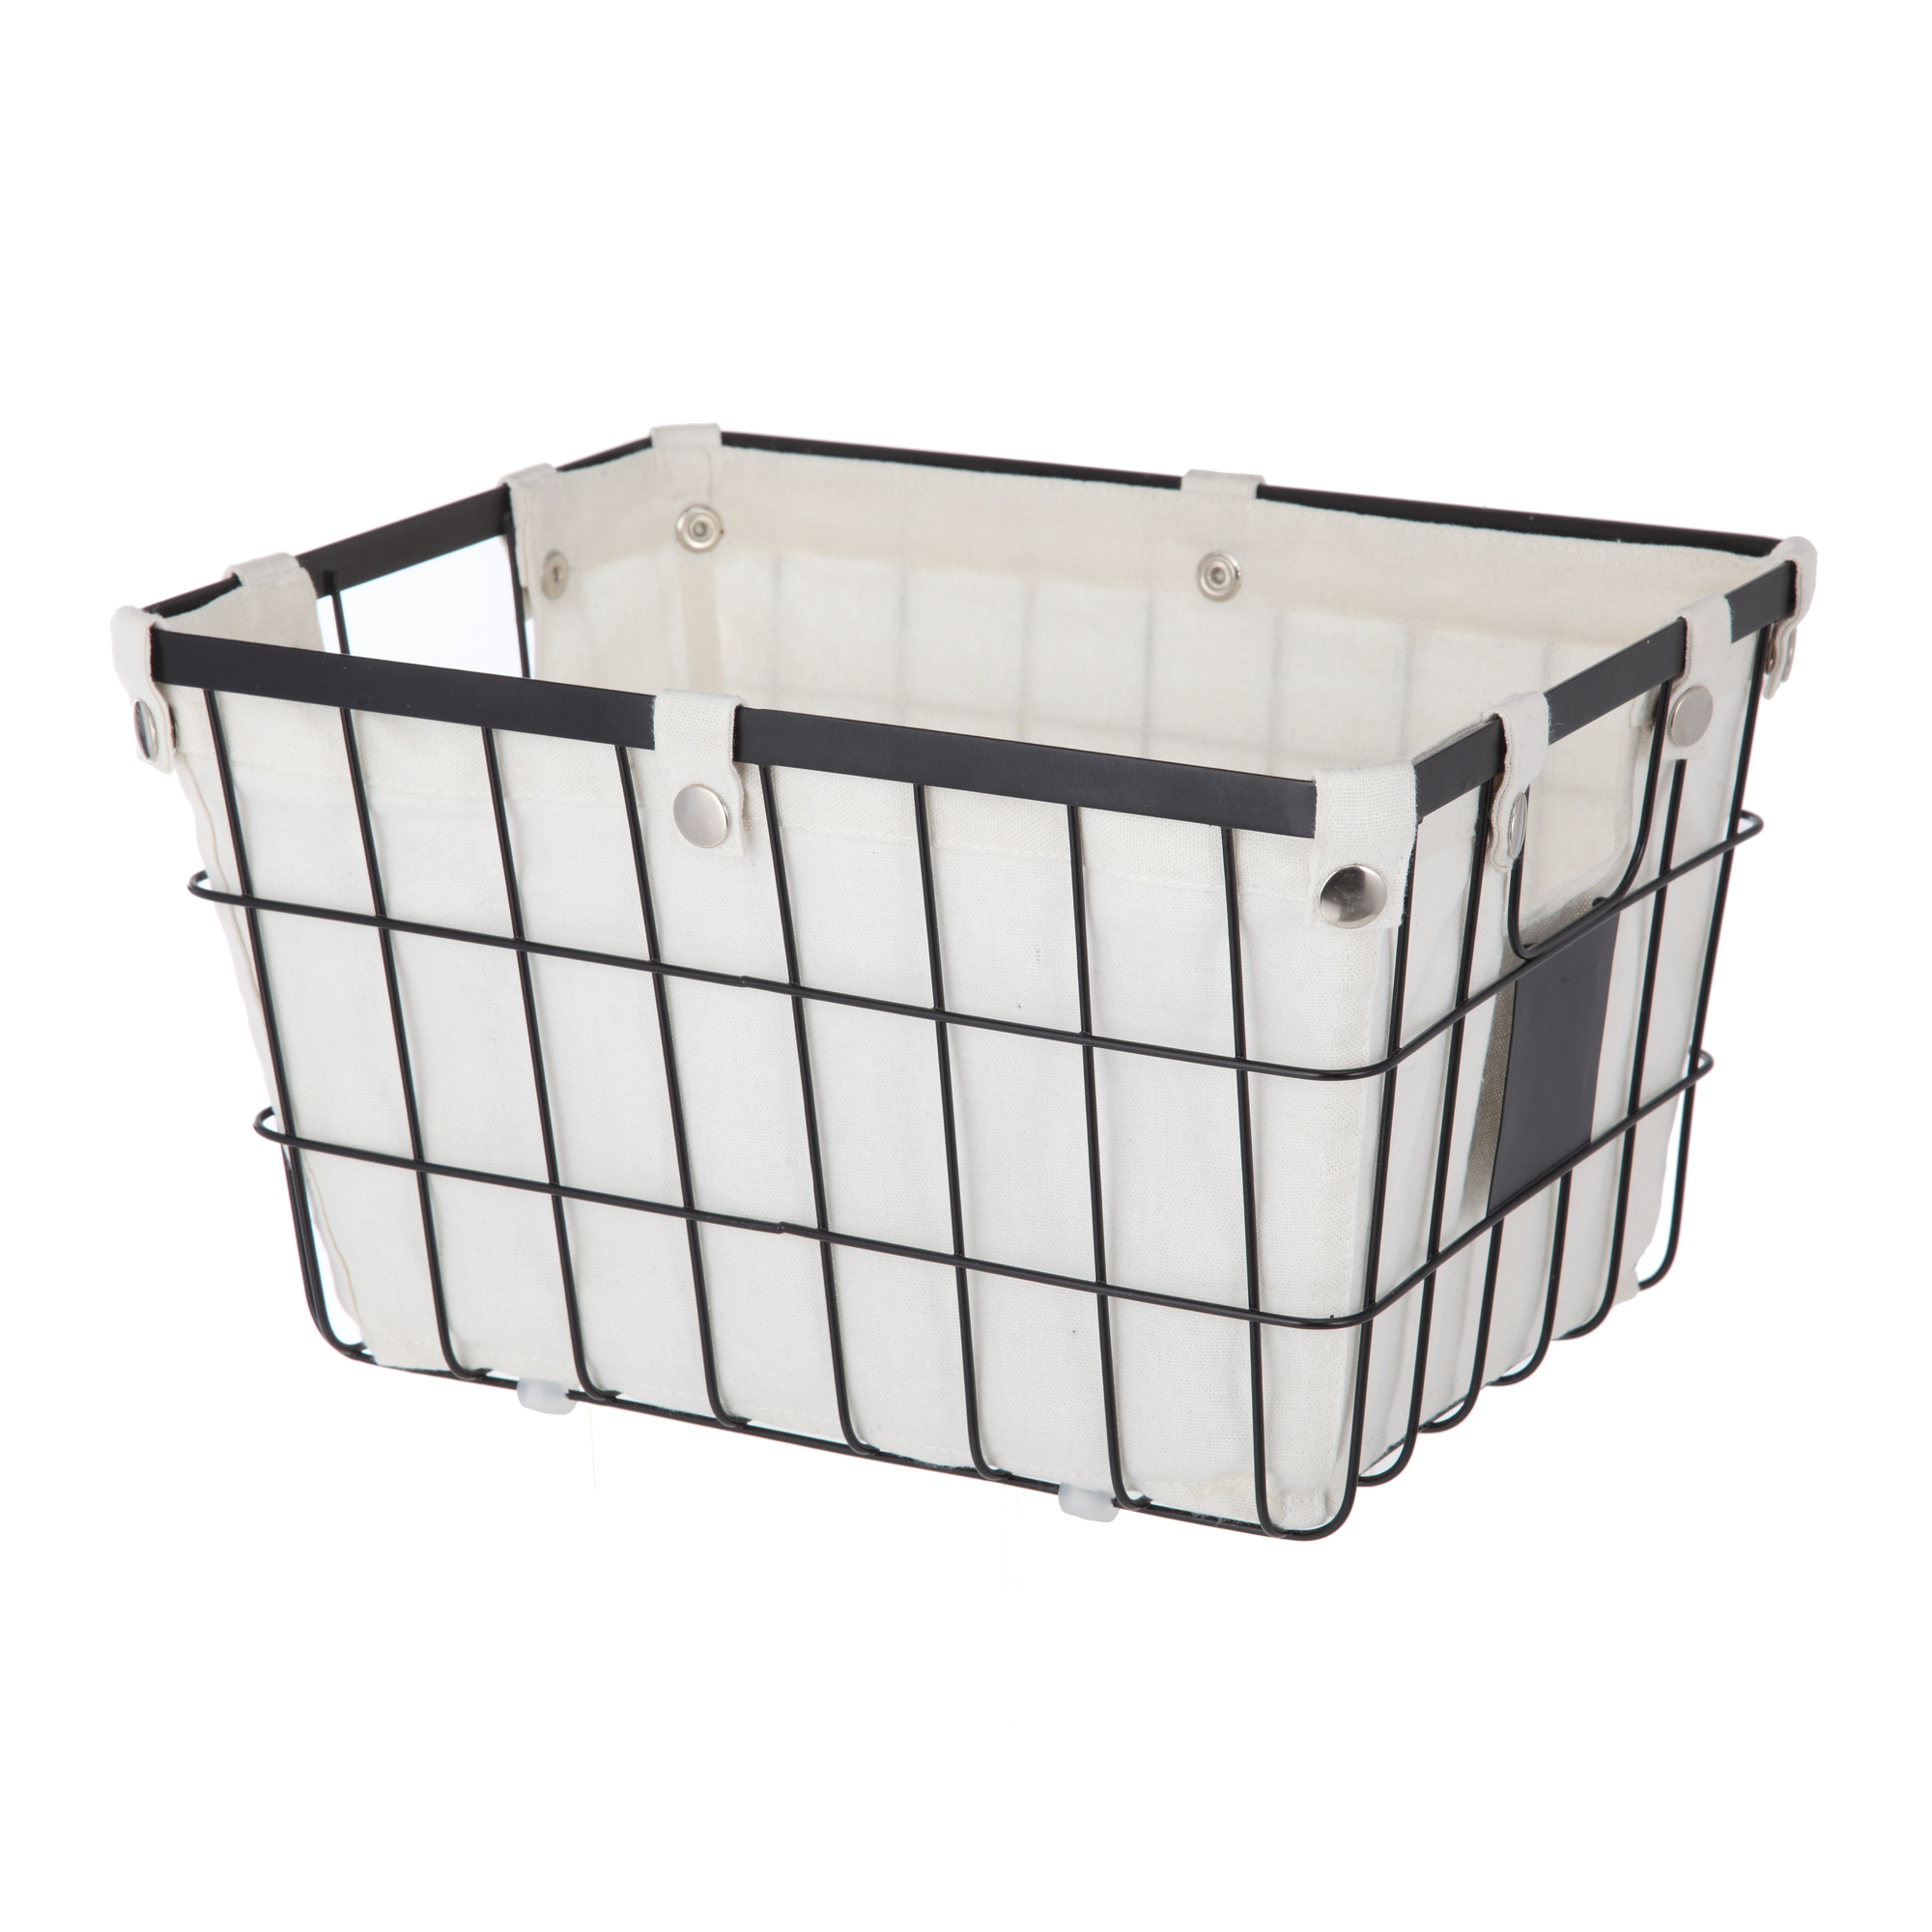 Better Homes and Gardens Small Wire Basket with Chalkboard, Black (1 ...